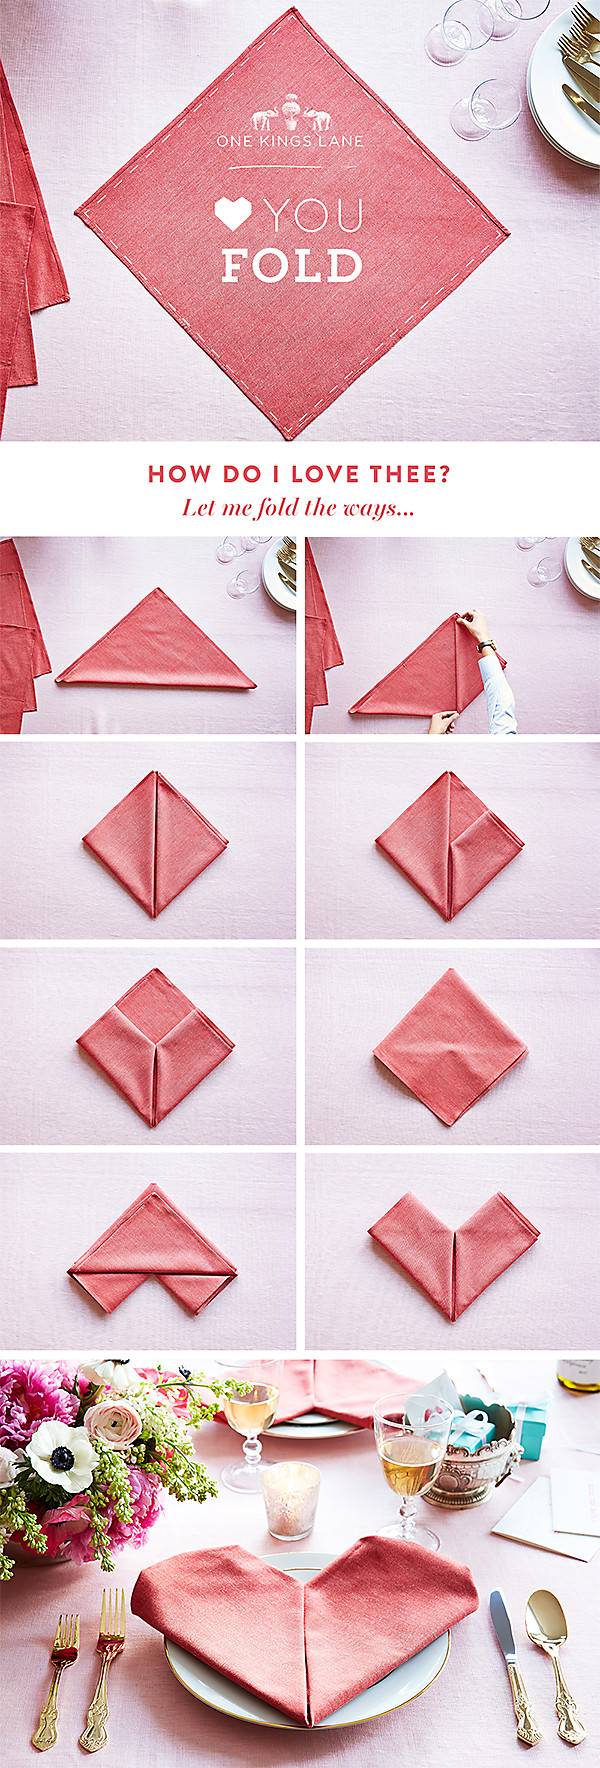 Lotus Flower Napkin Fold Step By Step : Heart Napkin Fold Step By Step including valentine decorating ideas